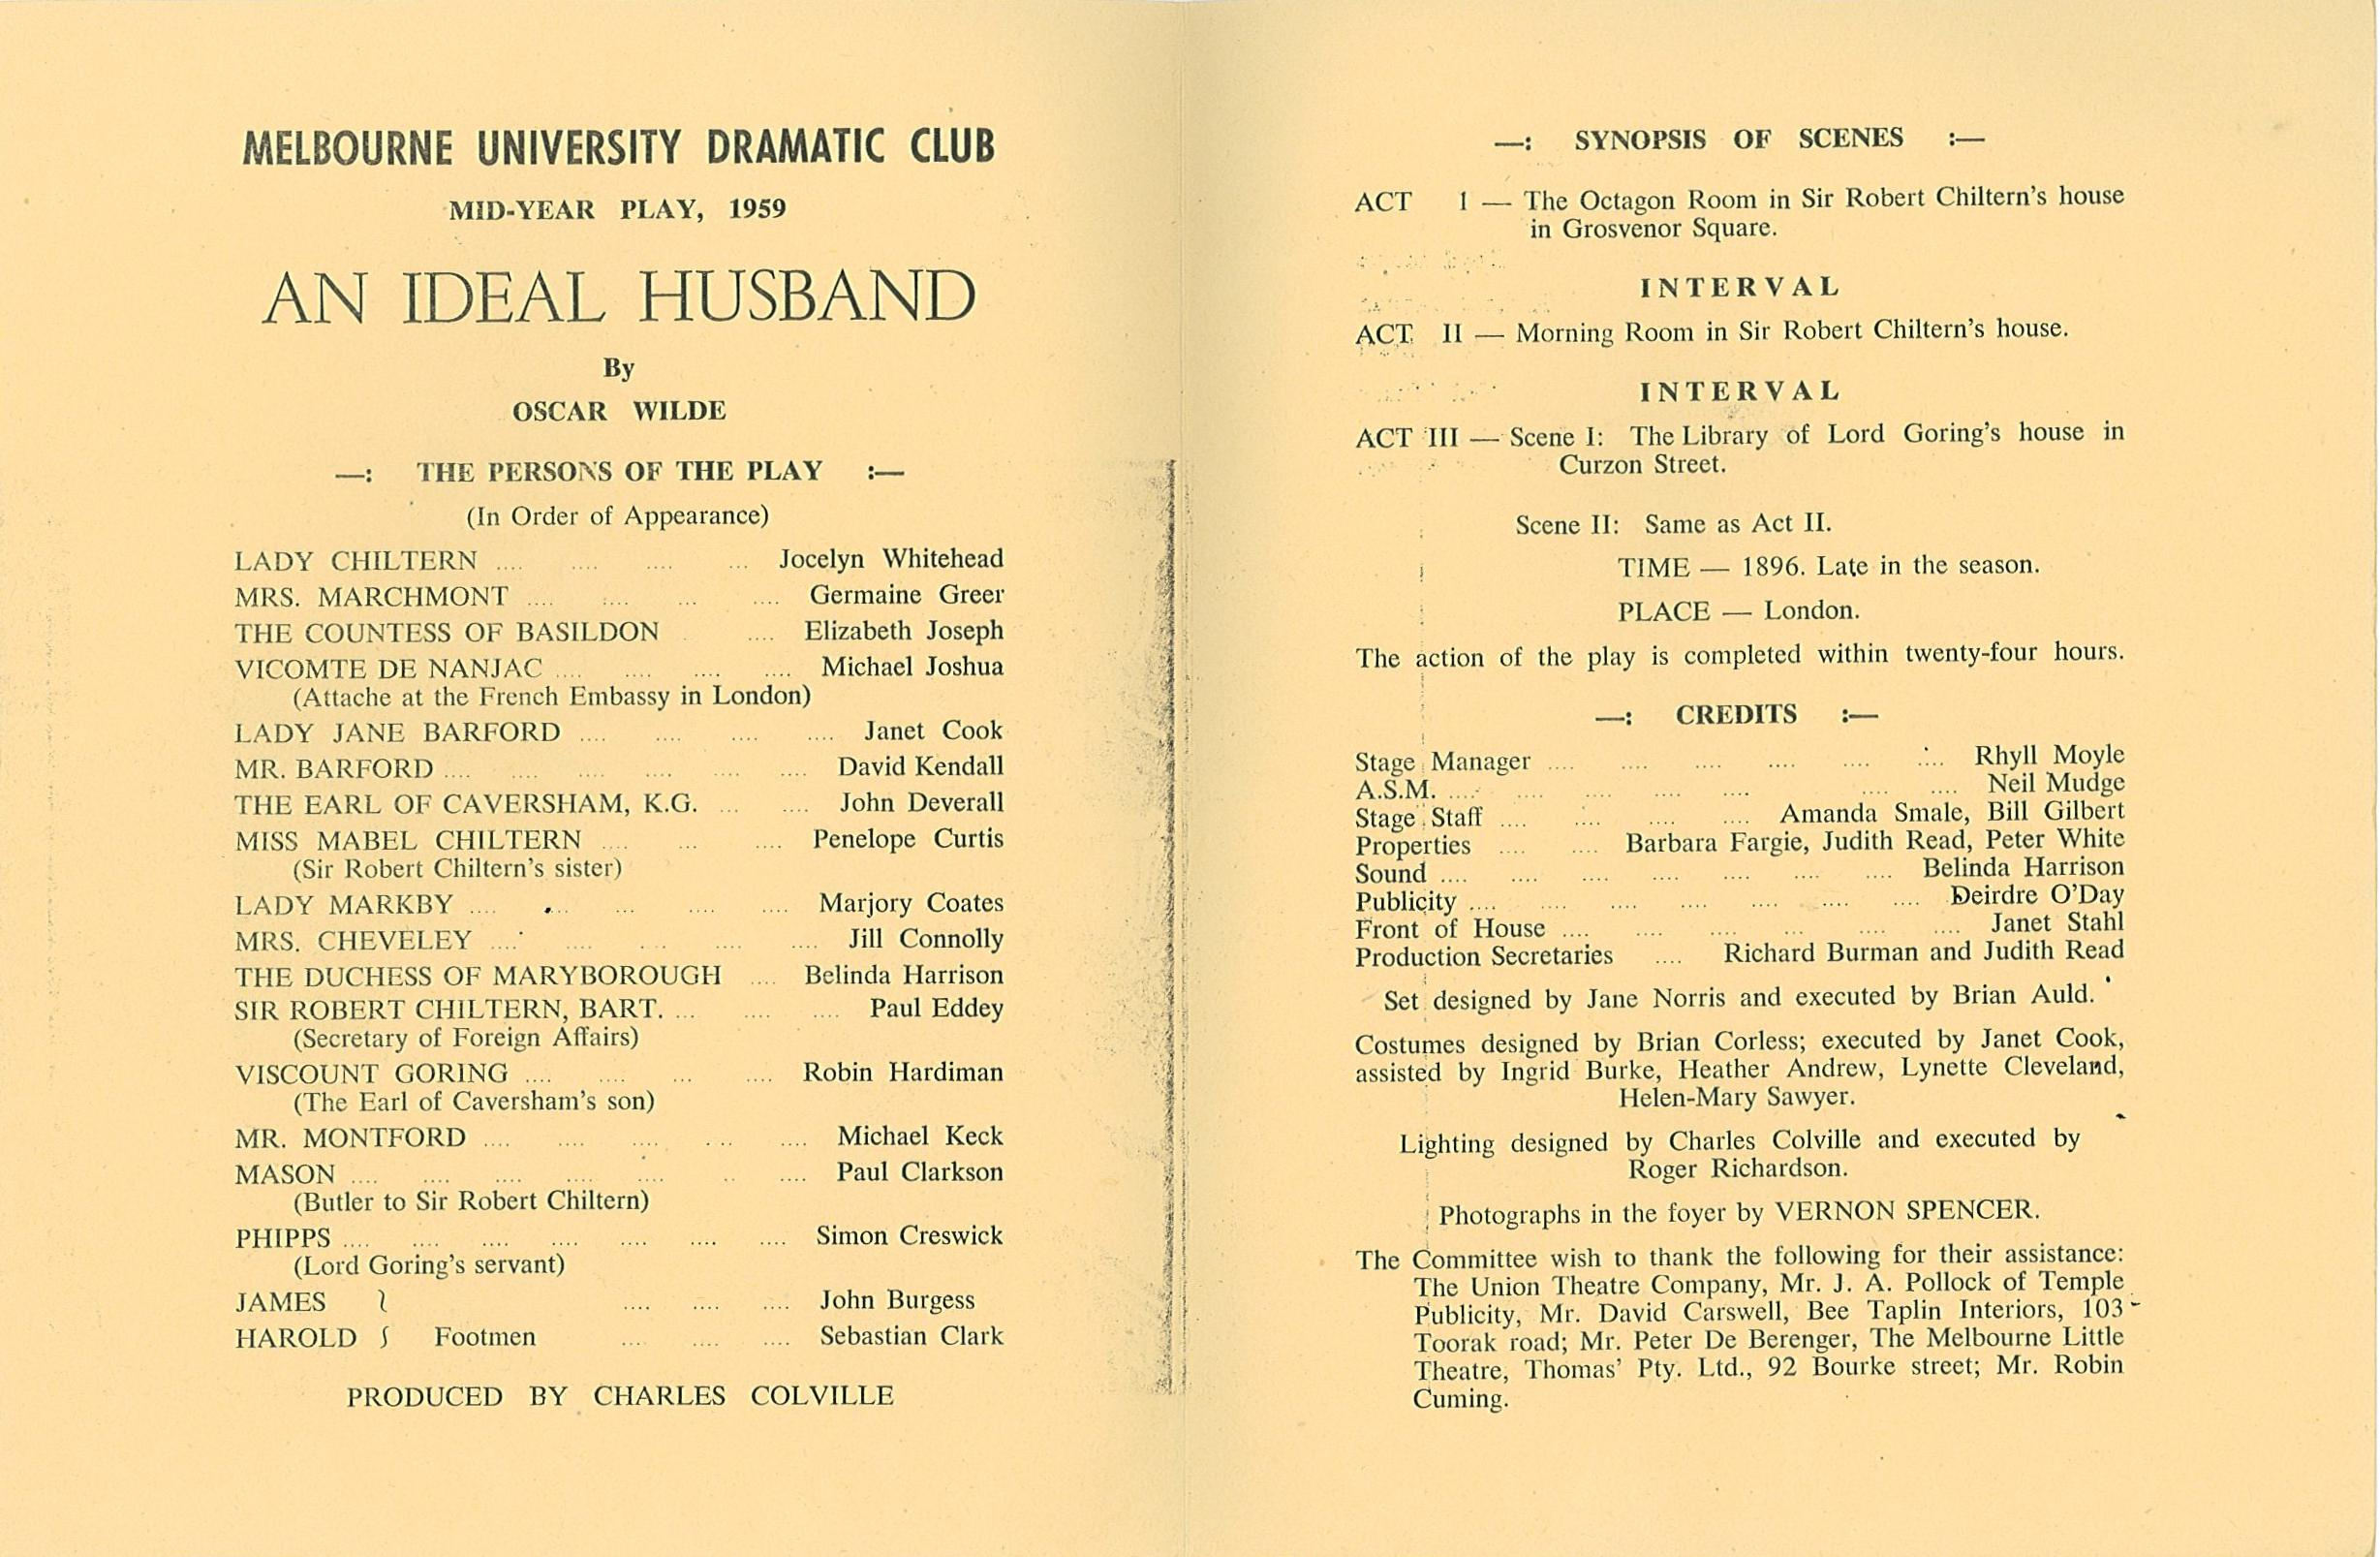 quotes about an ideal husband quotes melbourne university dramatic club mid year play 1959 an ideal husband by oscar wilde